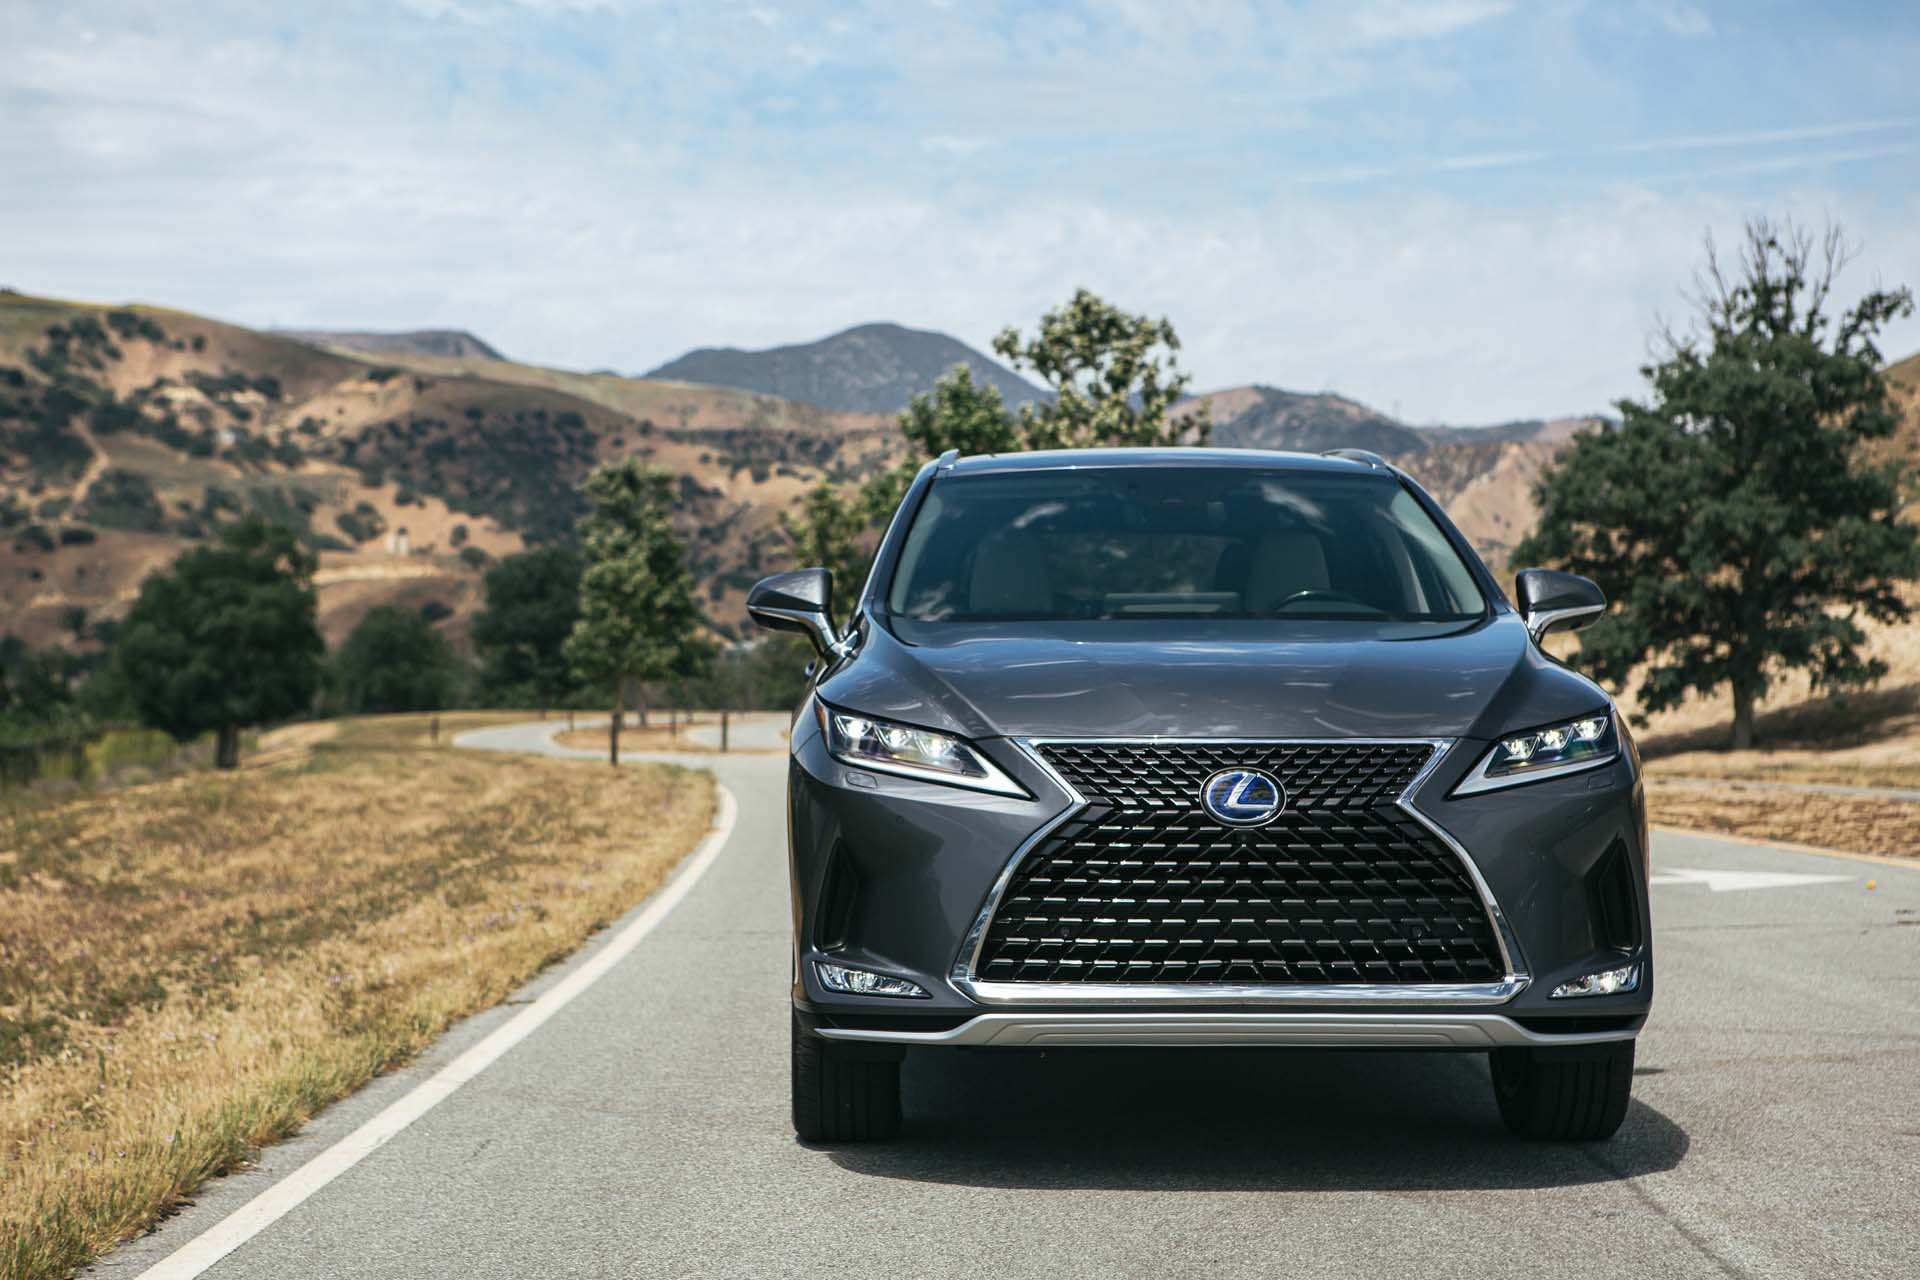 21 All New Lexus Electric 2020 Images